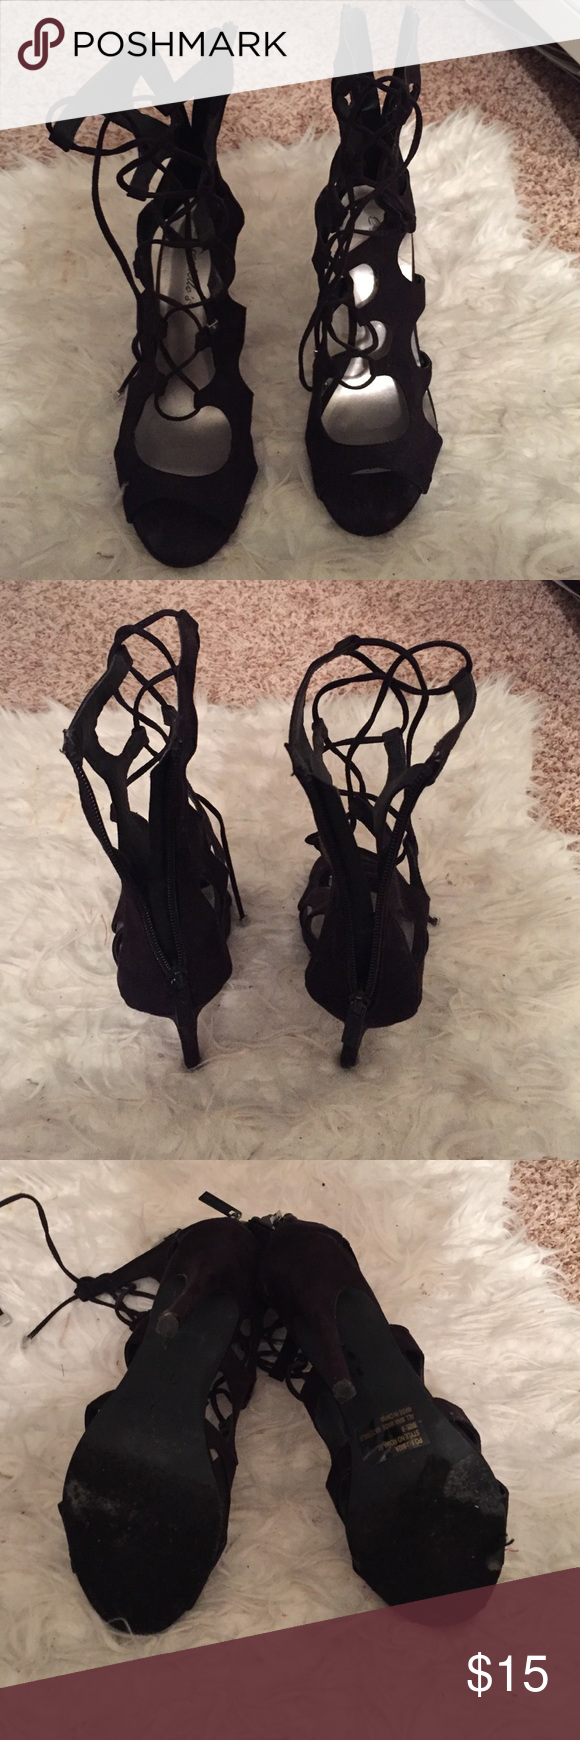 Fashion heels Black fashion heels. Used condition WINDSOR Shoes Lace Up Boots